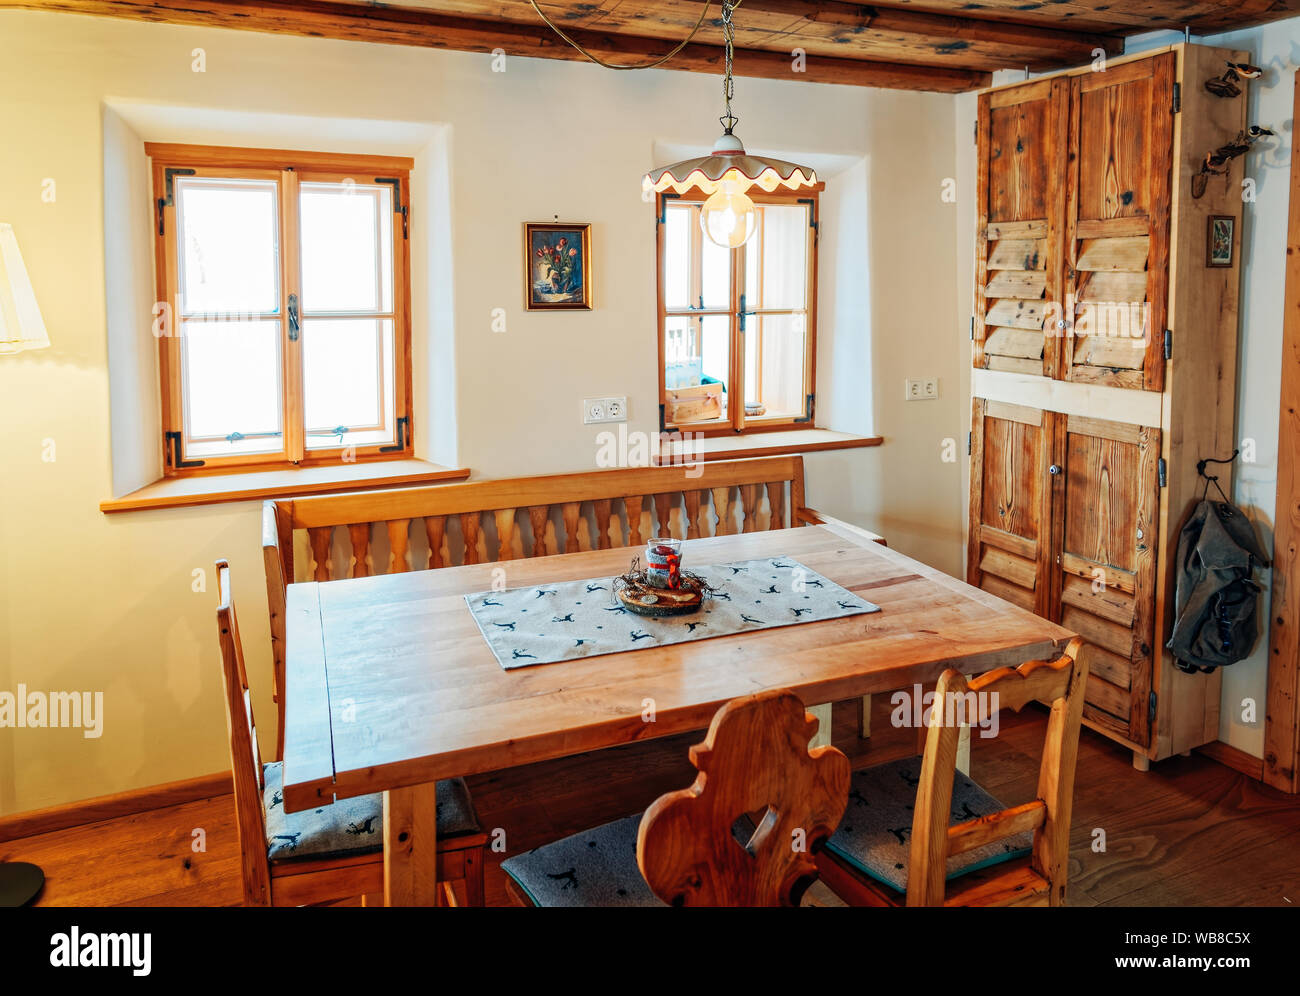 Modern Design Of Home Kitchen Interior Made Of Wood Materials Wooden Furniture In House Dining Room Brown Color Table And Chairs Window On Backgr Stock Photo Alamy